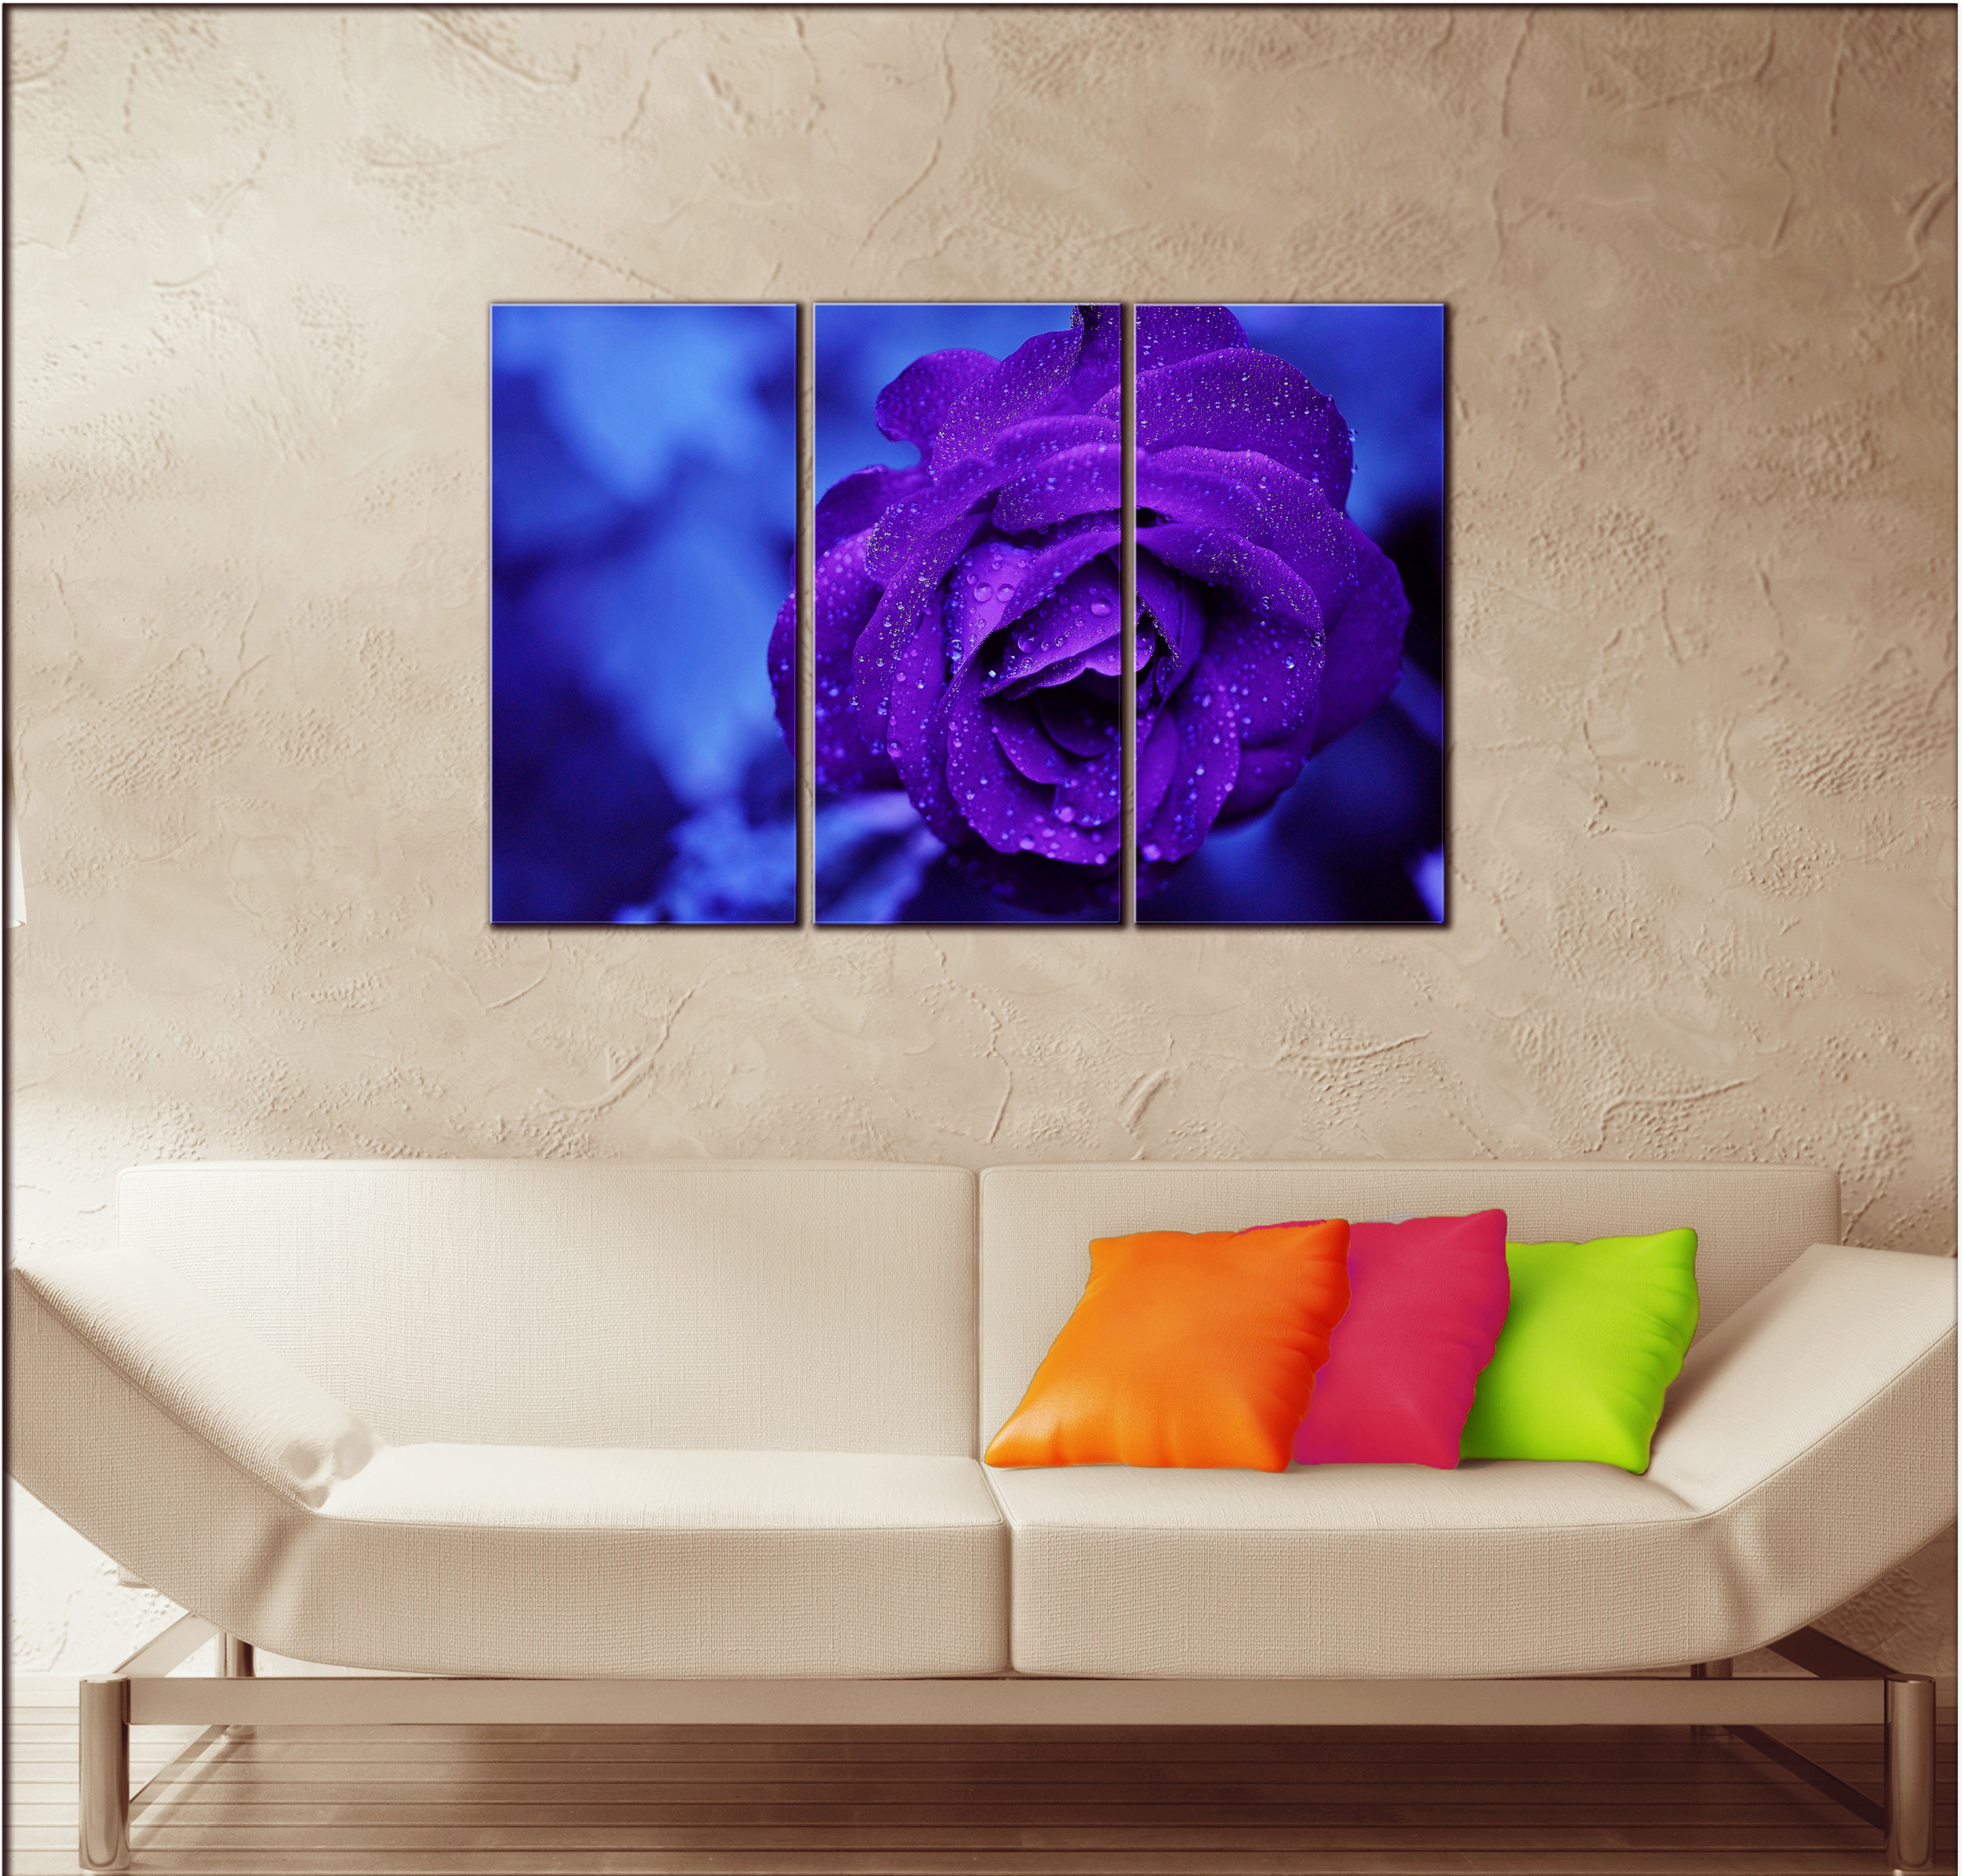 Big Blue Violet Rose Wall Art Decor Picture Painting Print 22 By 33 In